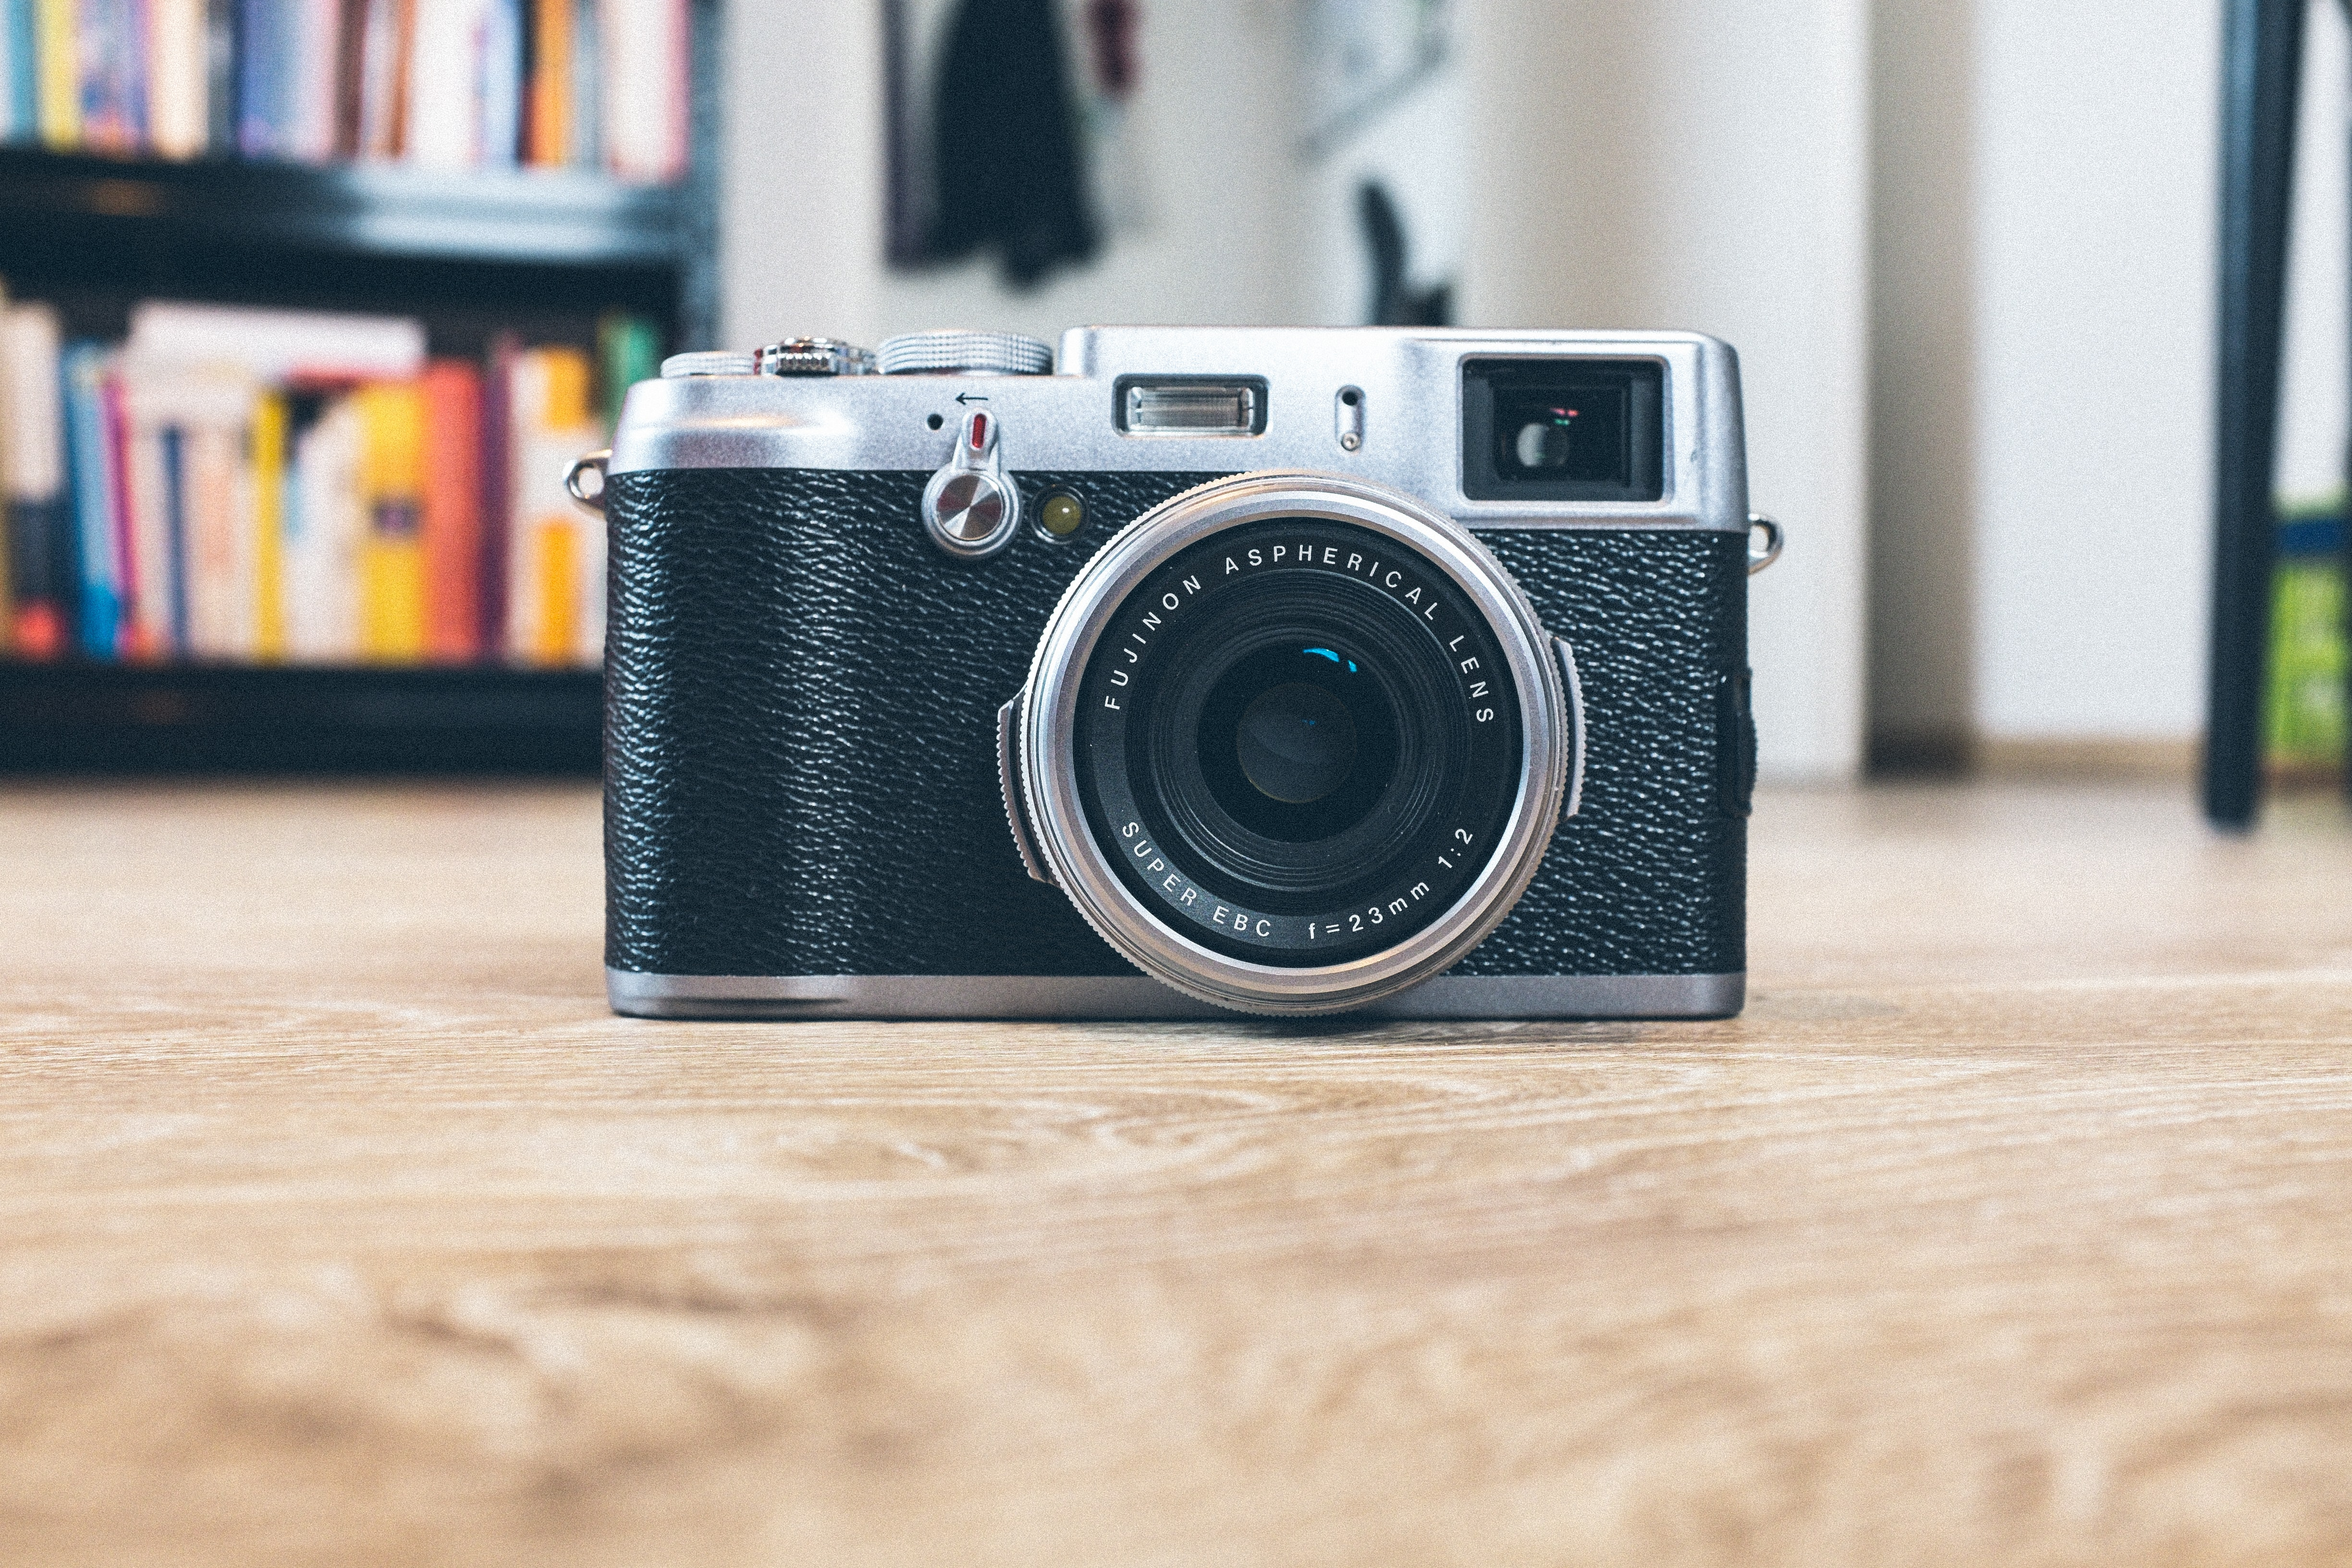 A Fujifilm vintage camera on a wooden floor beside a bookcase